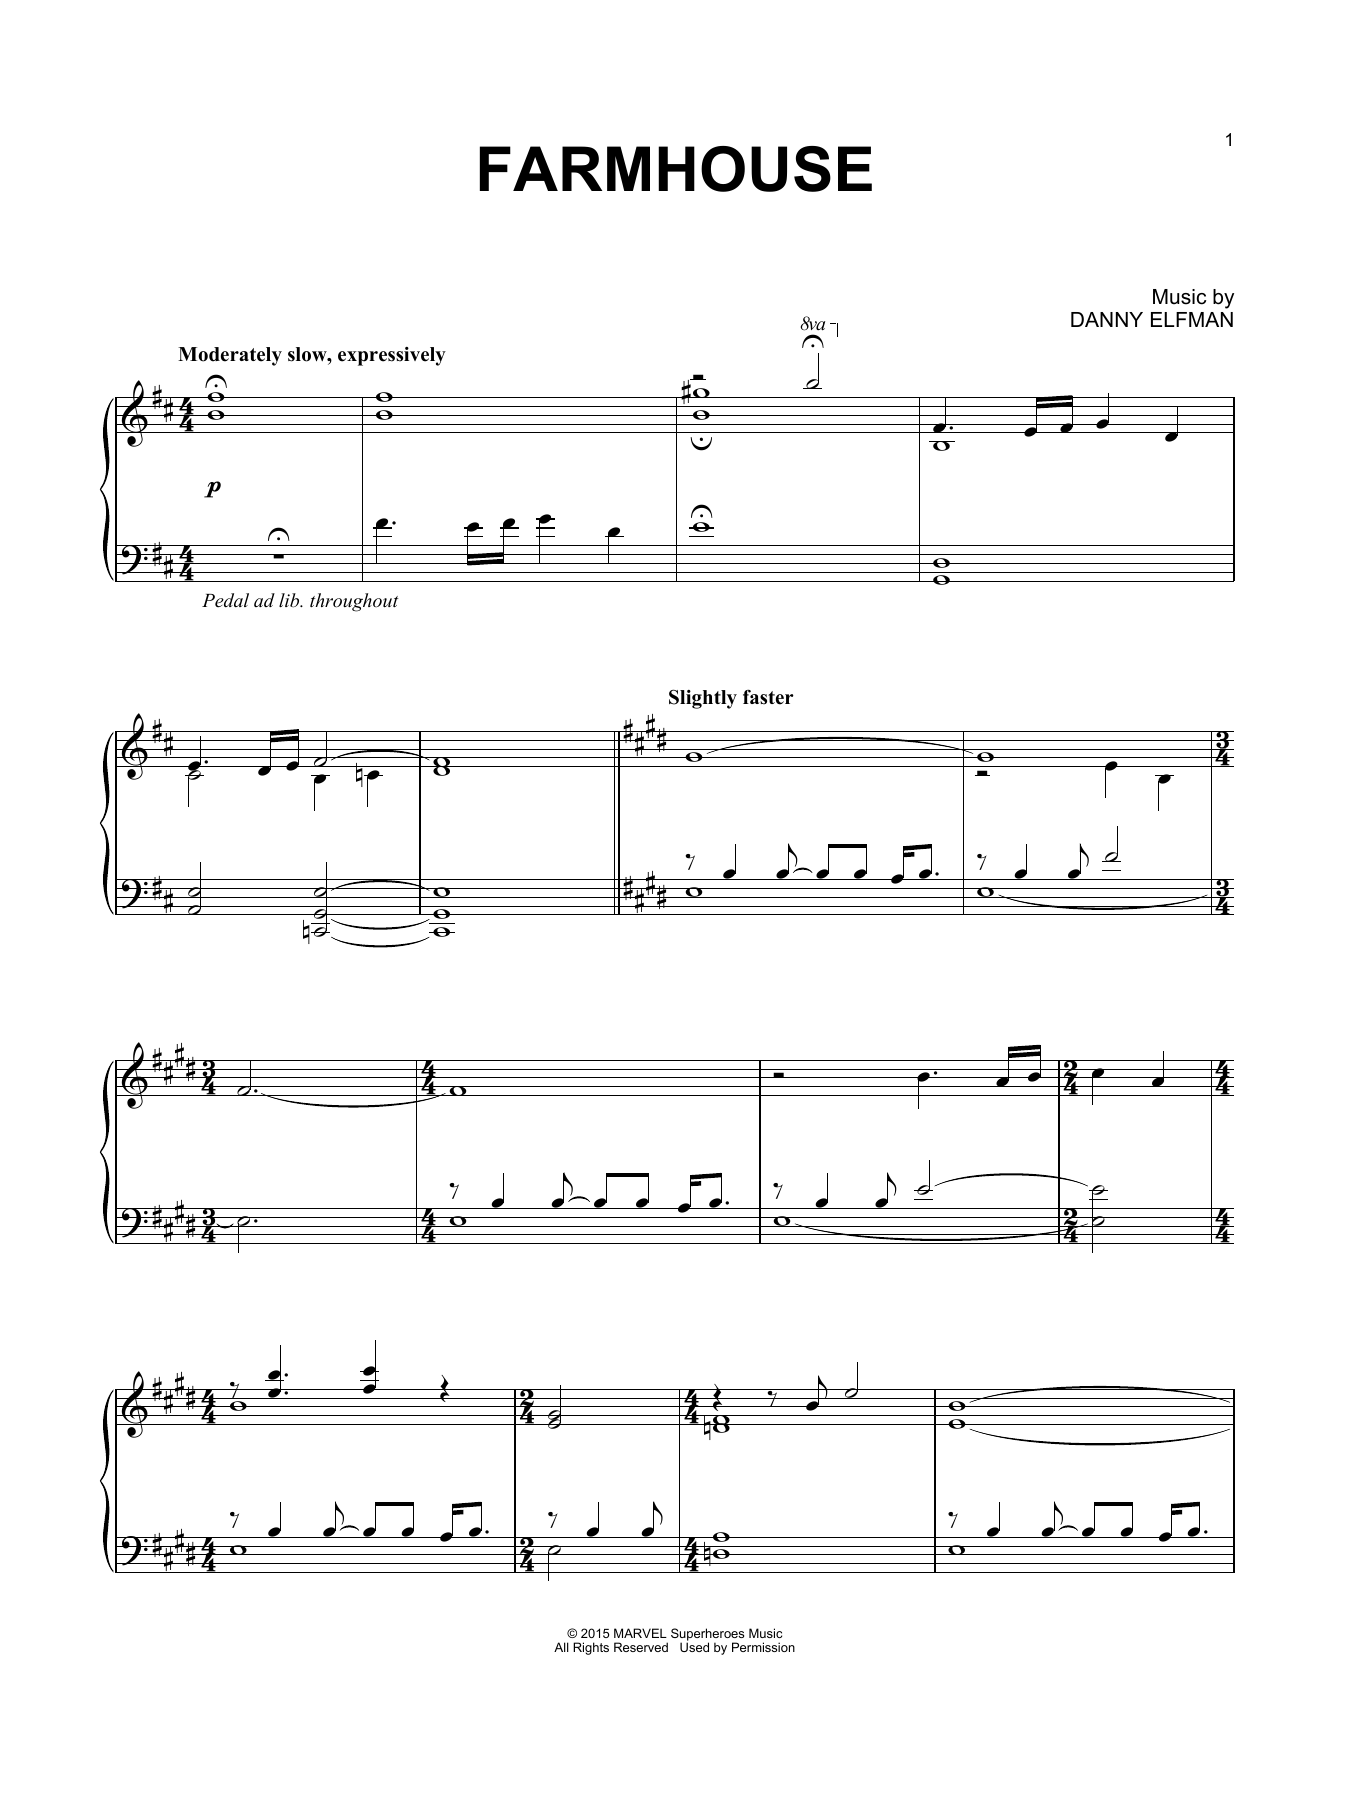 Danny Elfman Farmhouse sheet music notes and chords